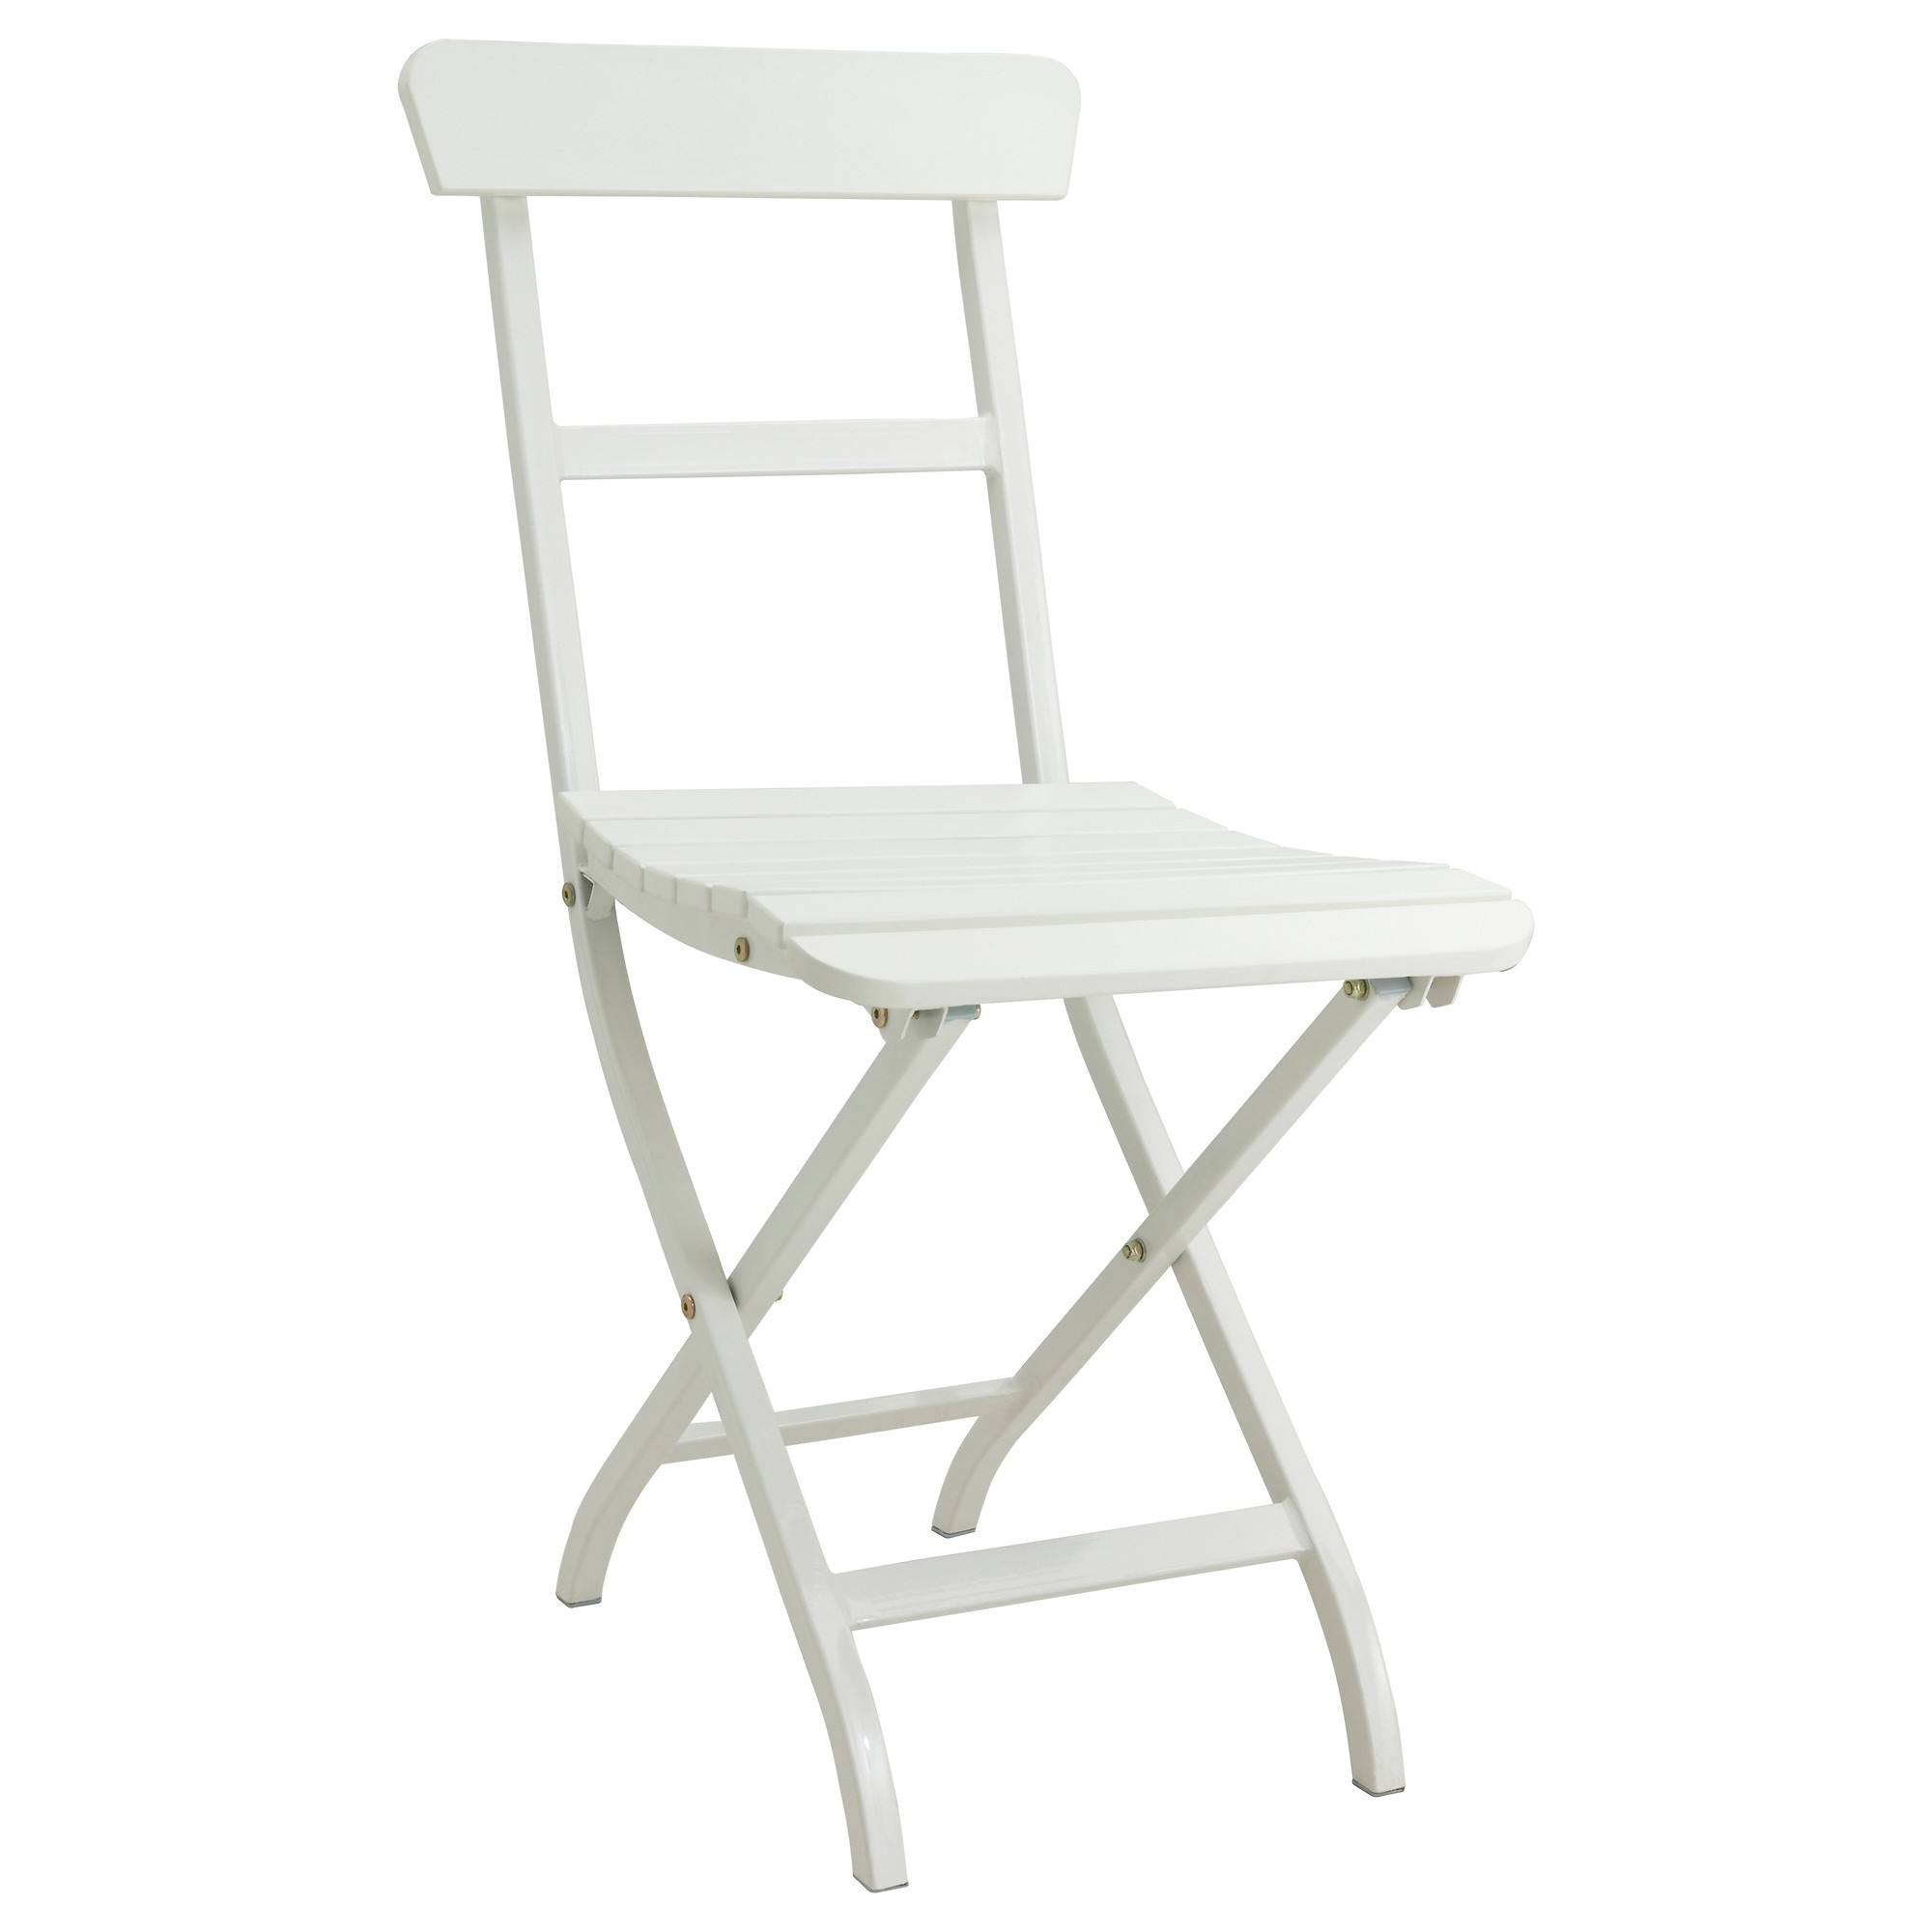 Ikea chaises cuisine sur la seconde photo la cuisine ikea for Table et chaise en pin pas cher